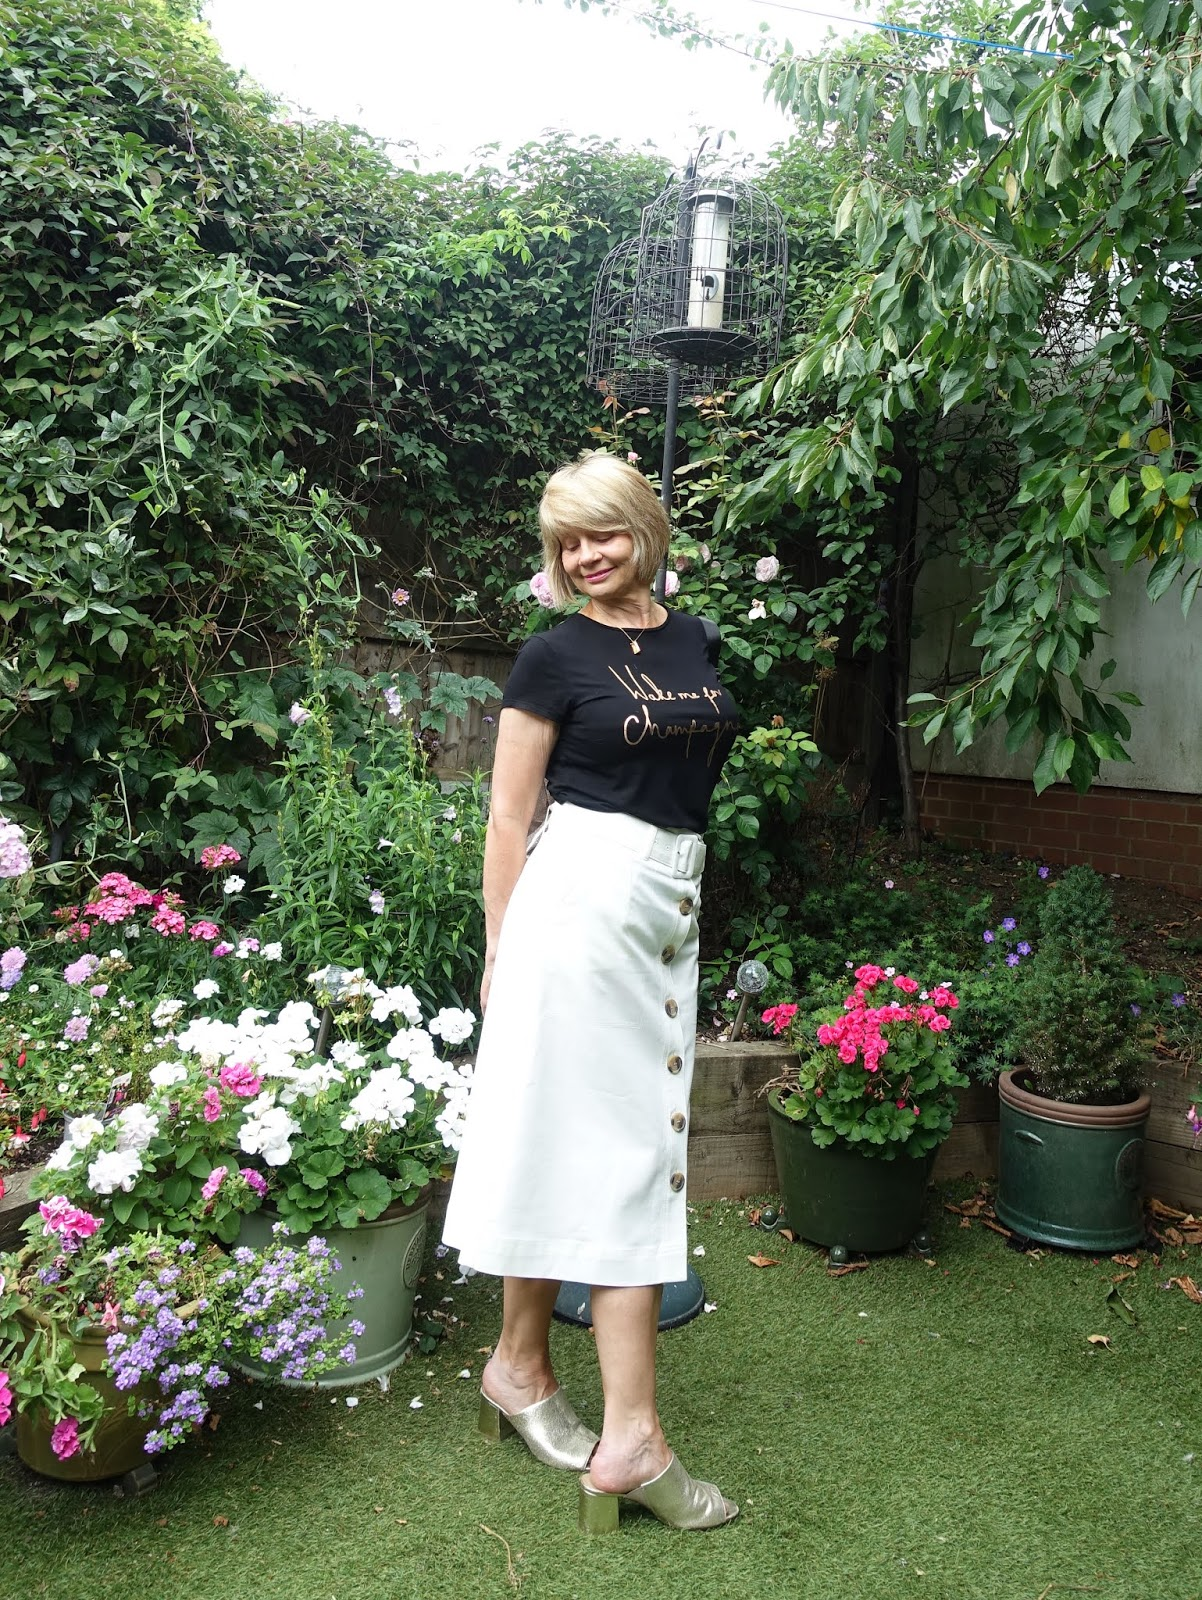 Posing in the summer garden Is This Mutton style blogger Gail Hanlon wearing gold mules, a black slogan tee and white midi A line skirt